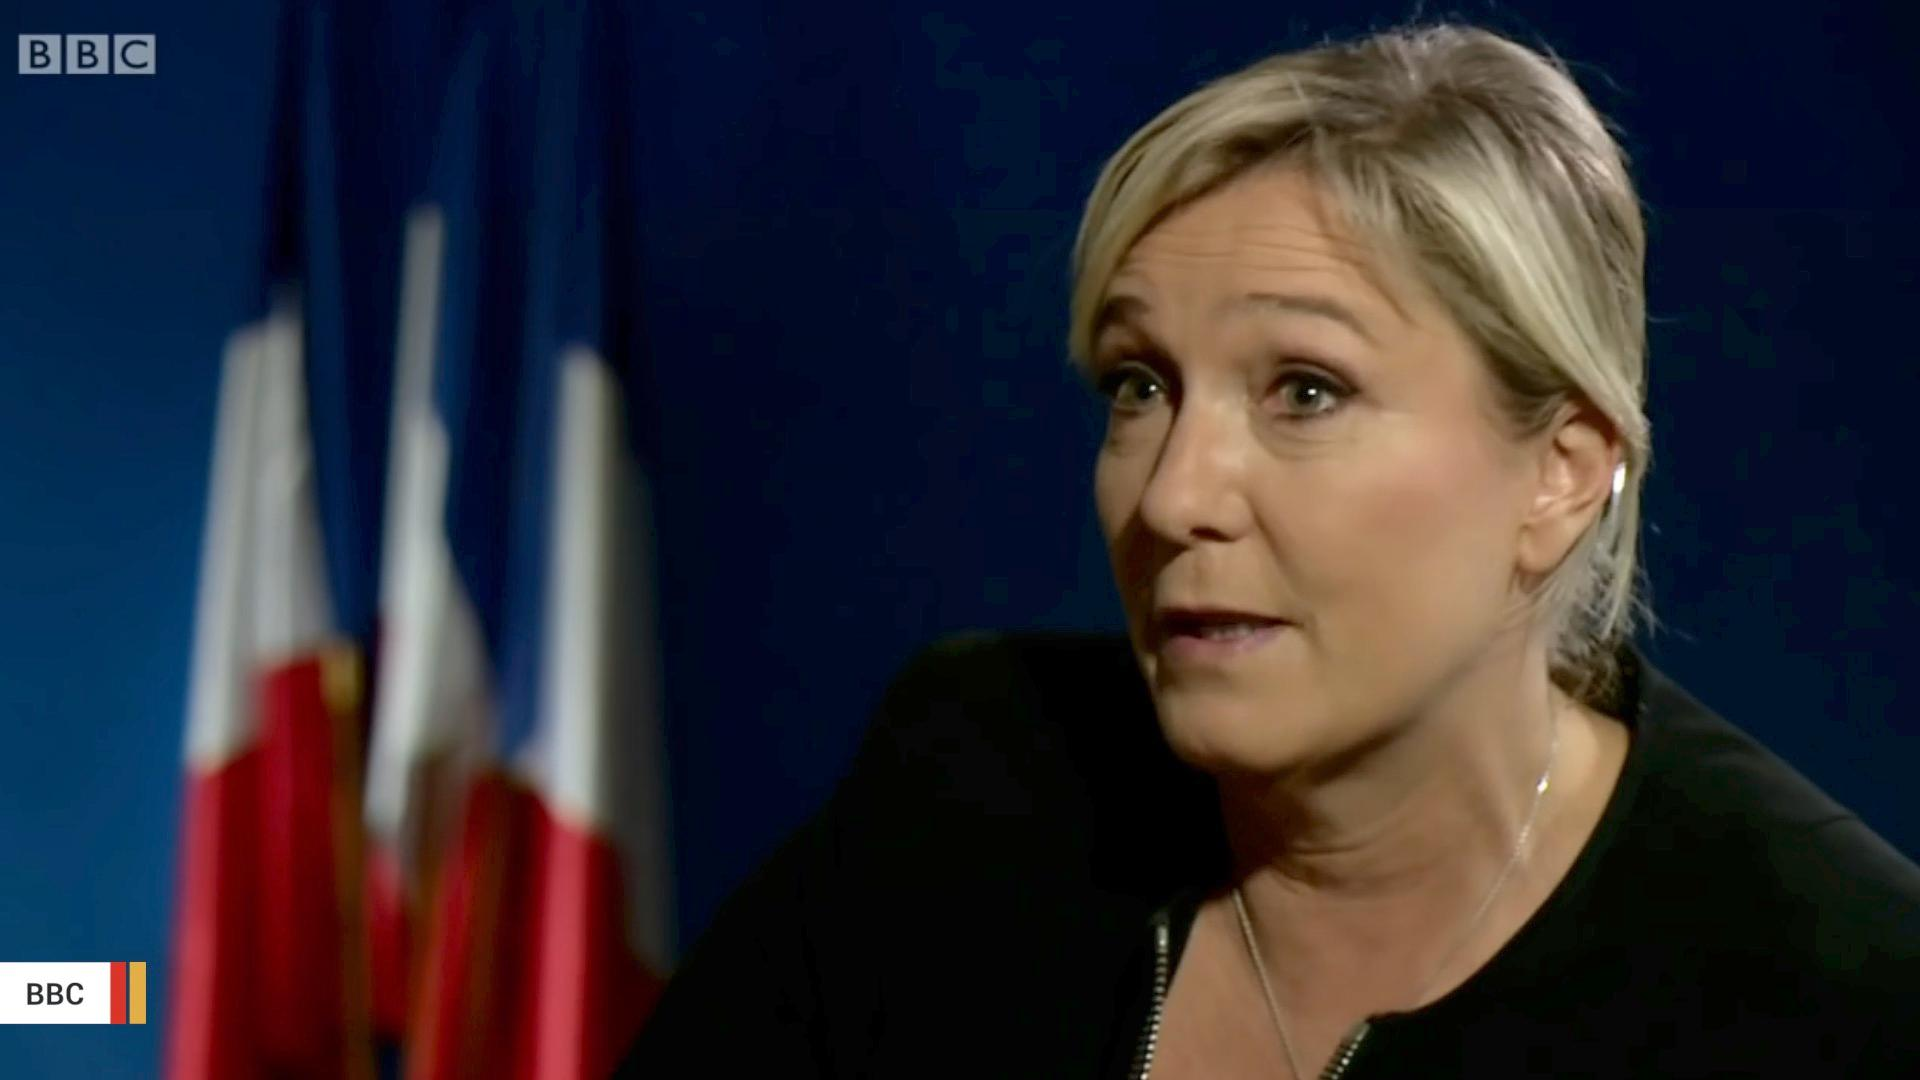 Report: France's Far-Right Candidate Marine Le Pen Gains Ground